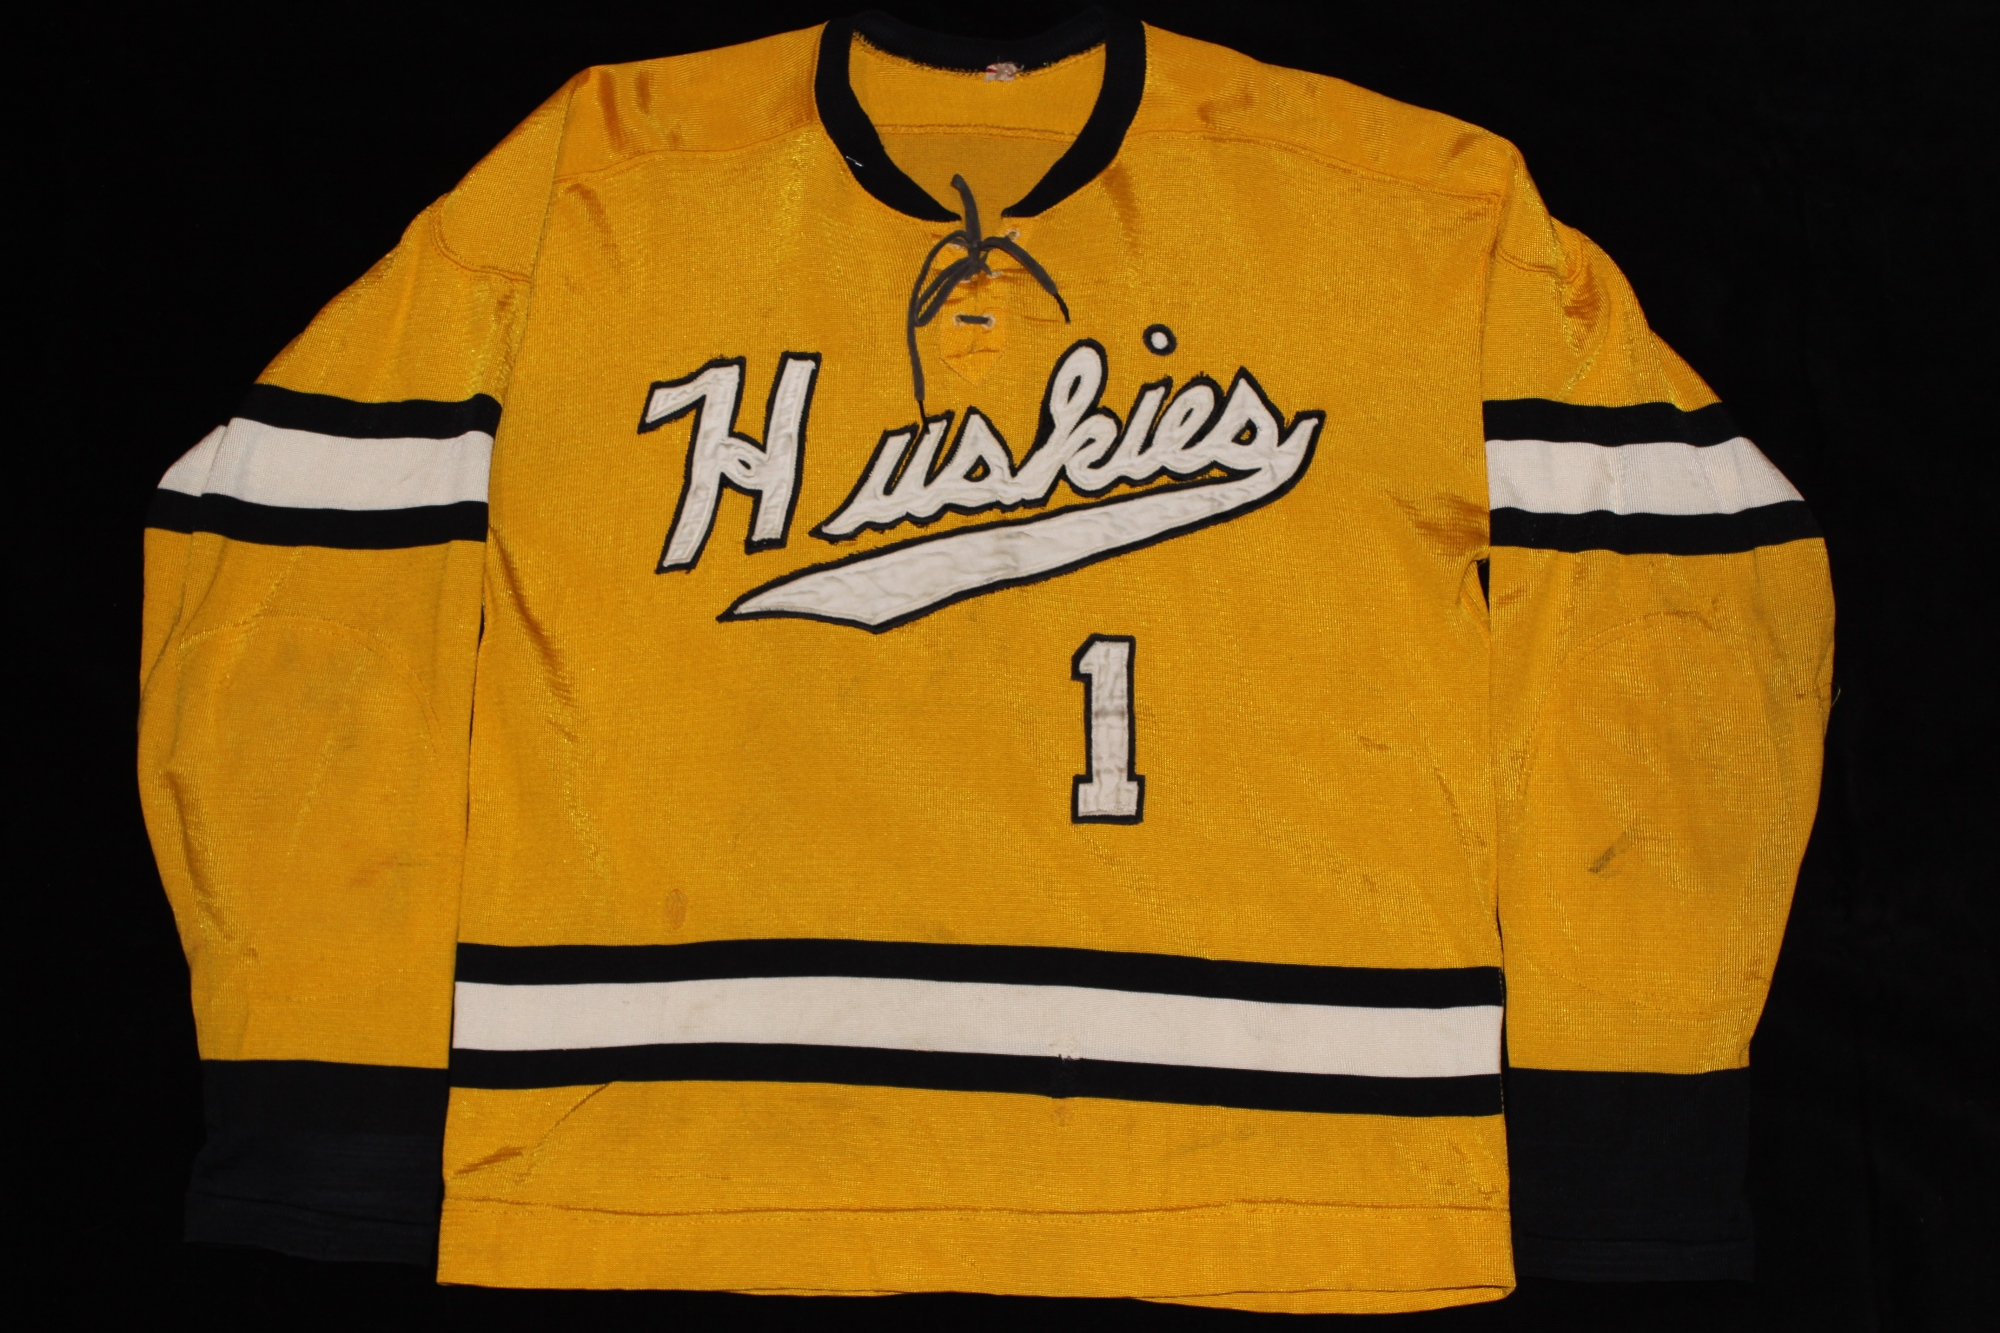 Johnson s Jerseys - Michigan Tech Hockey Gameworn Memorabilia... and So  Much More 42a4a23a569